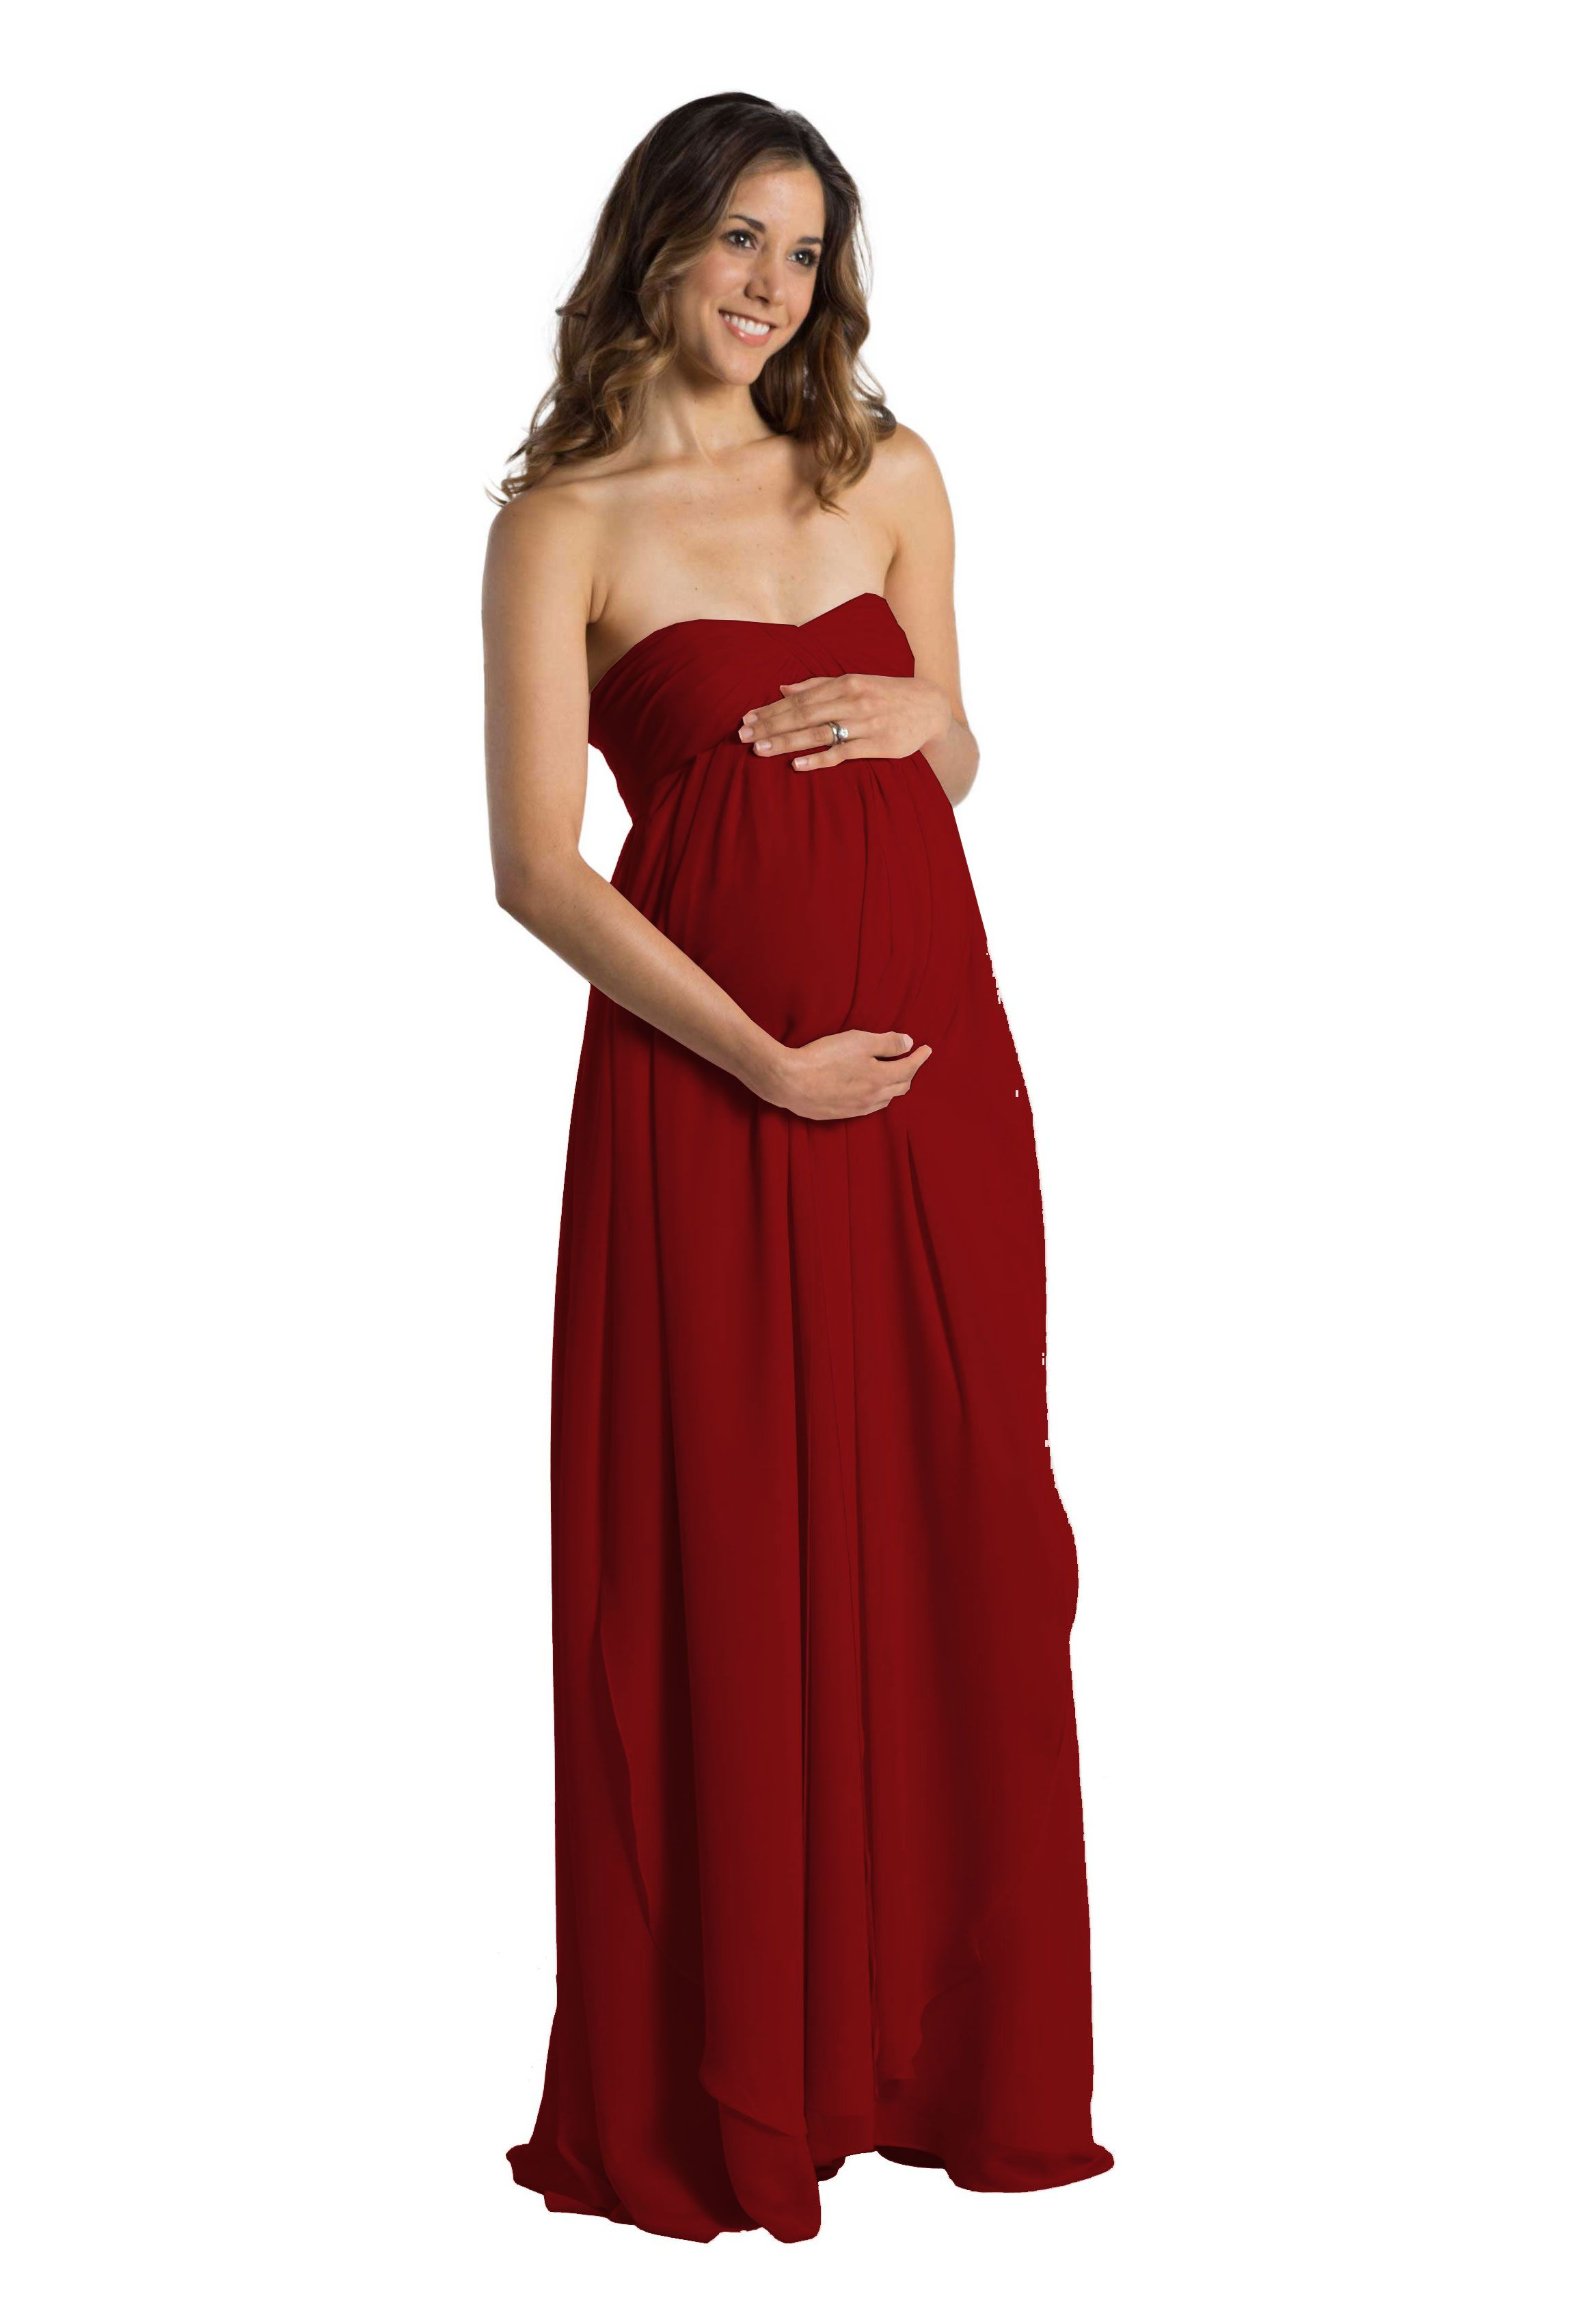 c3500635faed Jenny Yoo's Cerise dress is the maternity version of -- and perfect  companion to -